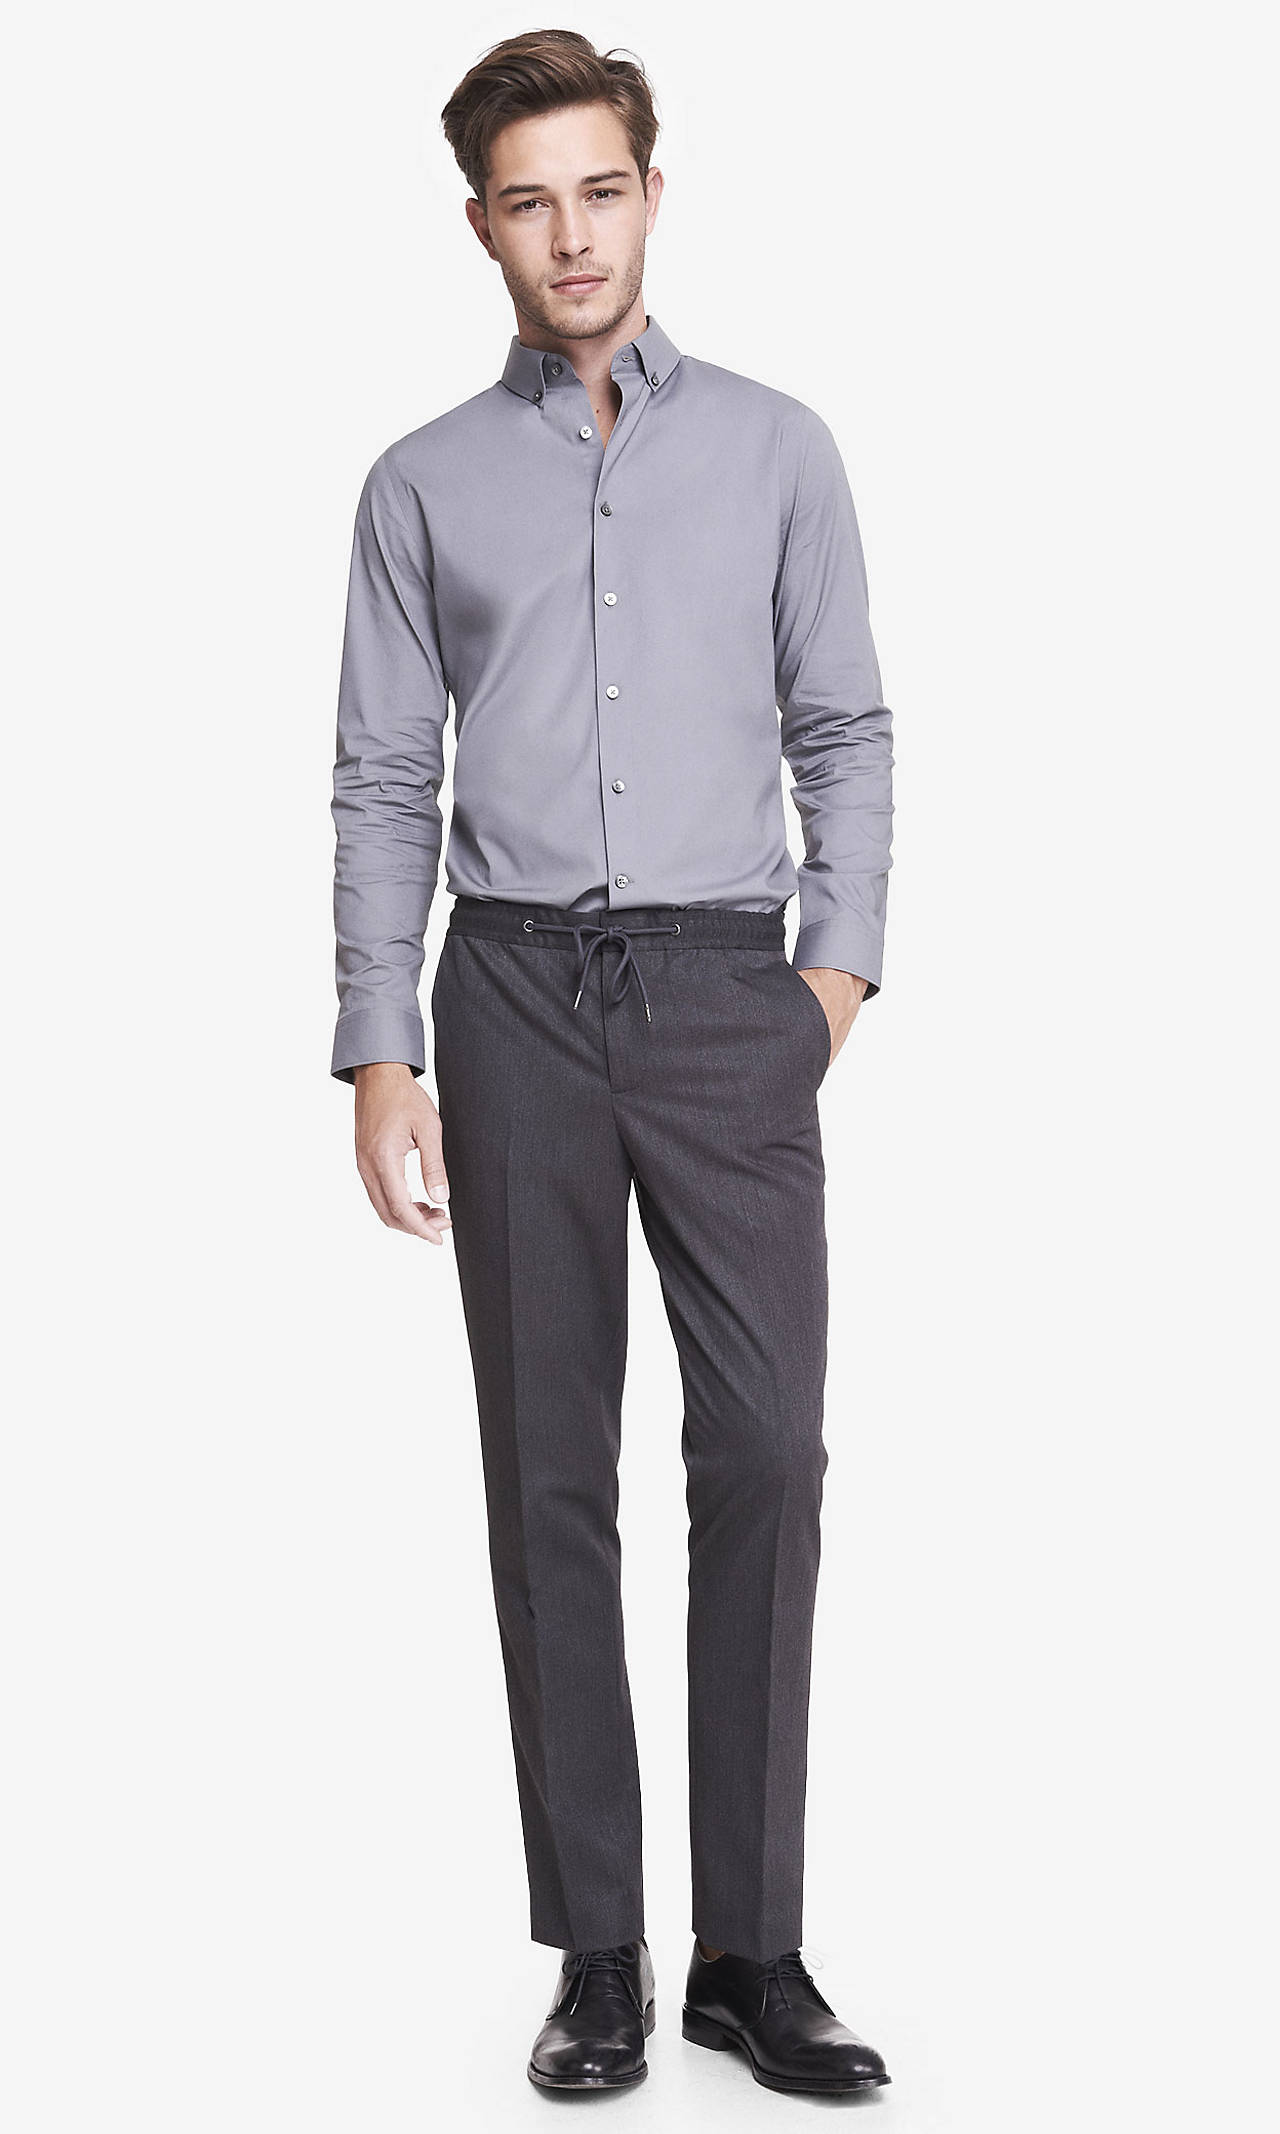 DRAWSTRING PHOTOGRAPHER DRESS PANT from EXPRESS